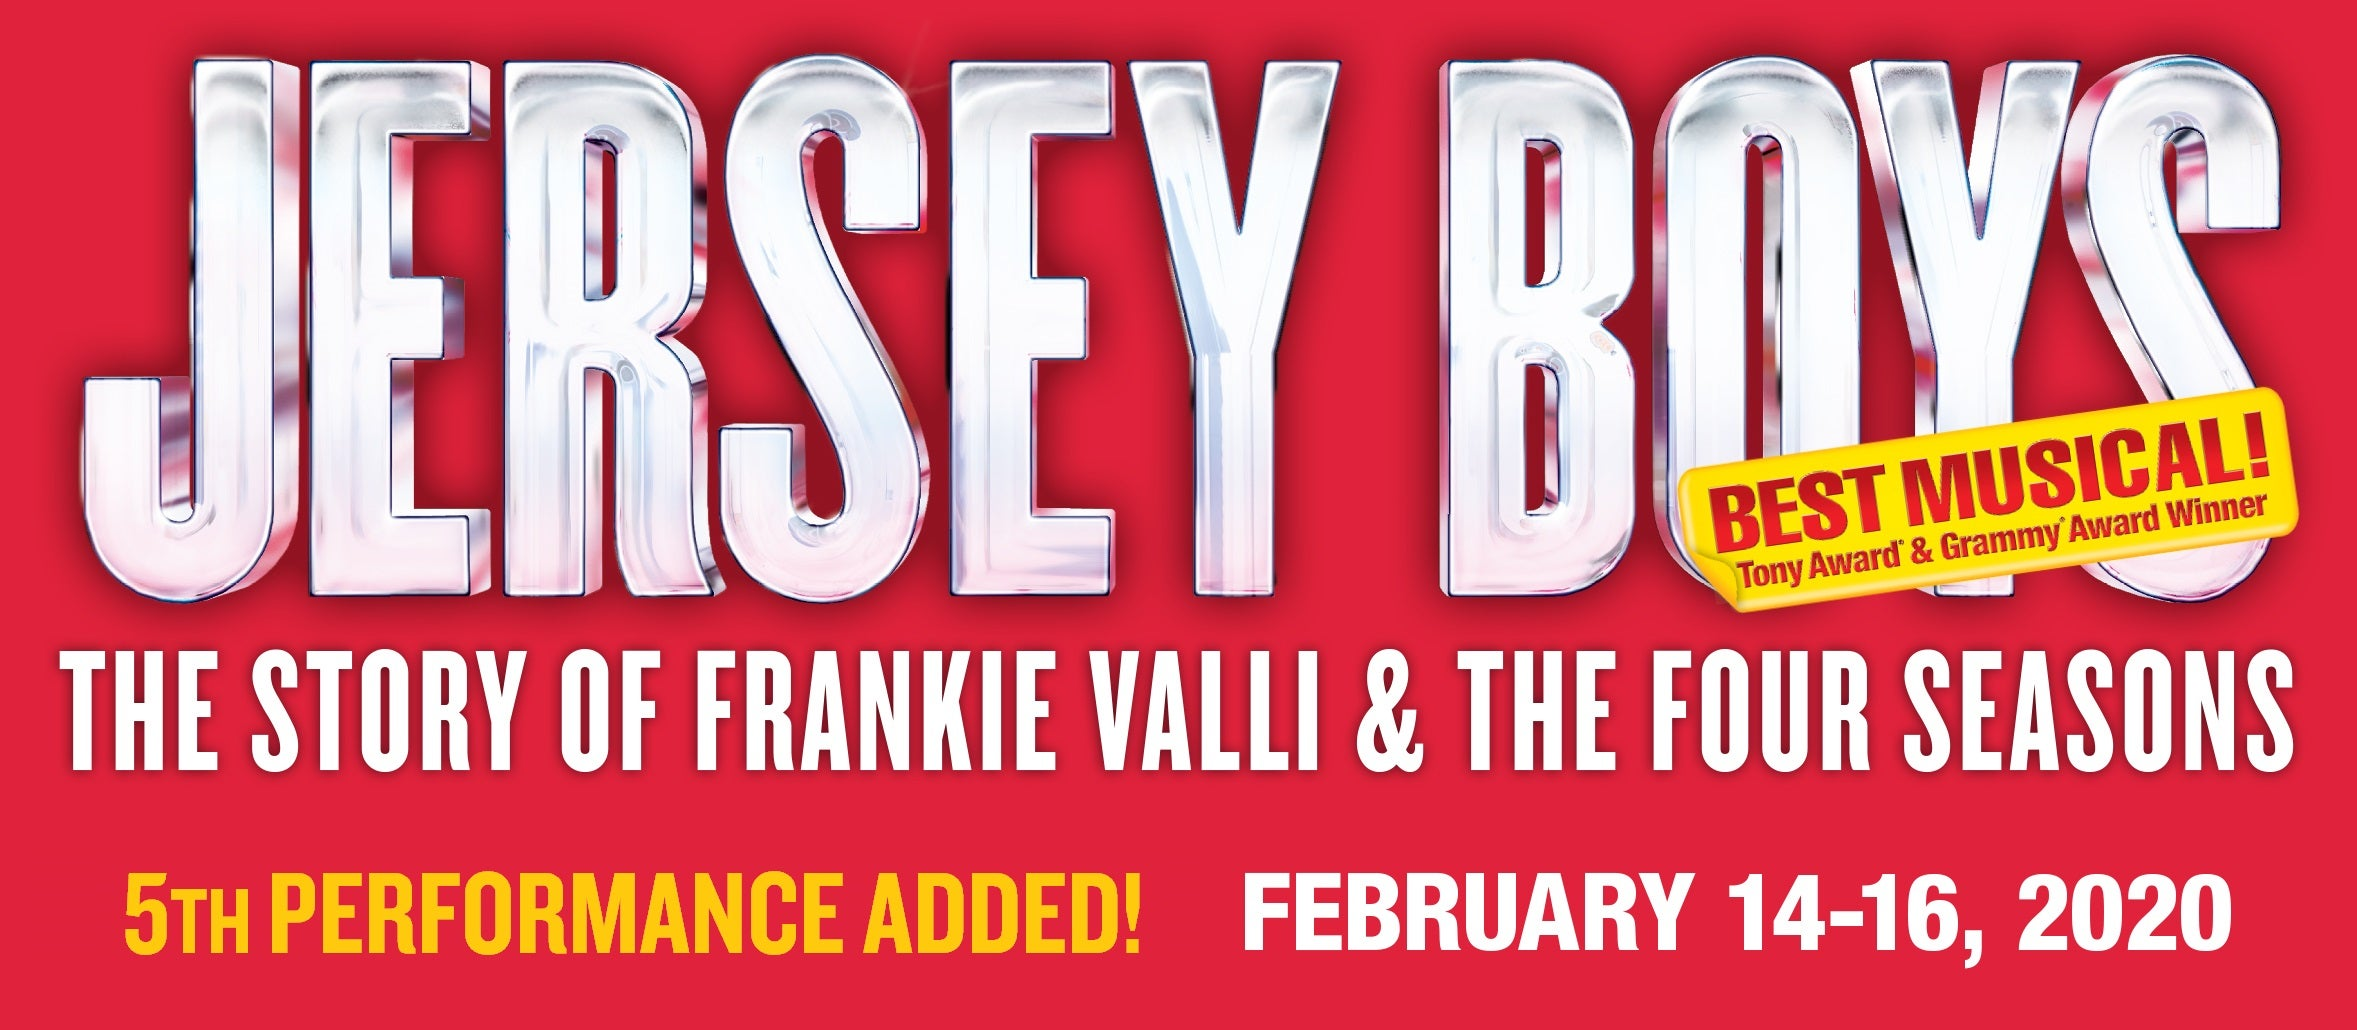 More Info for JERSEY BOYS - 5th PERFORMANCE ADDED